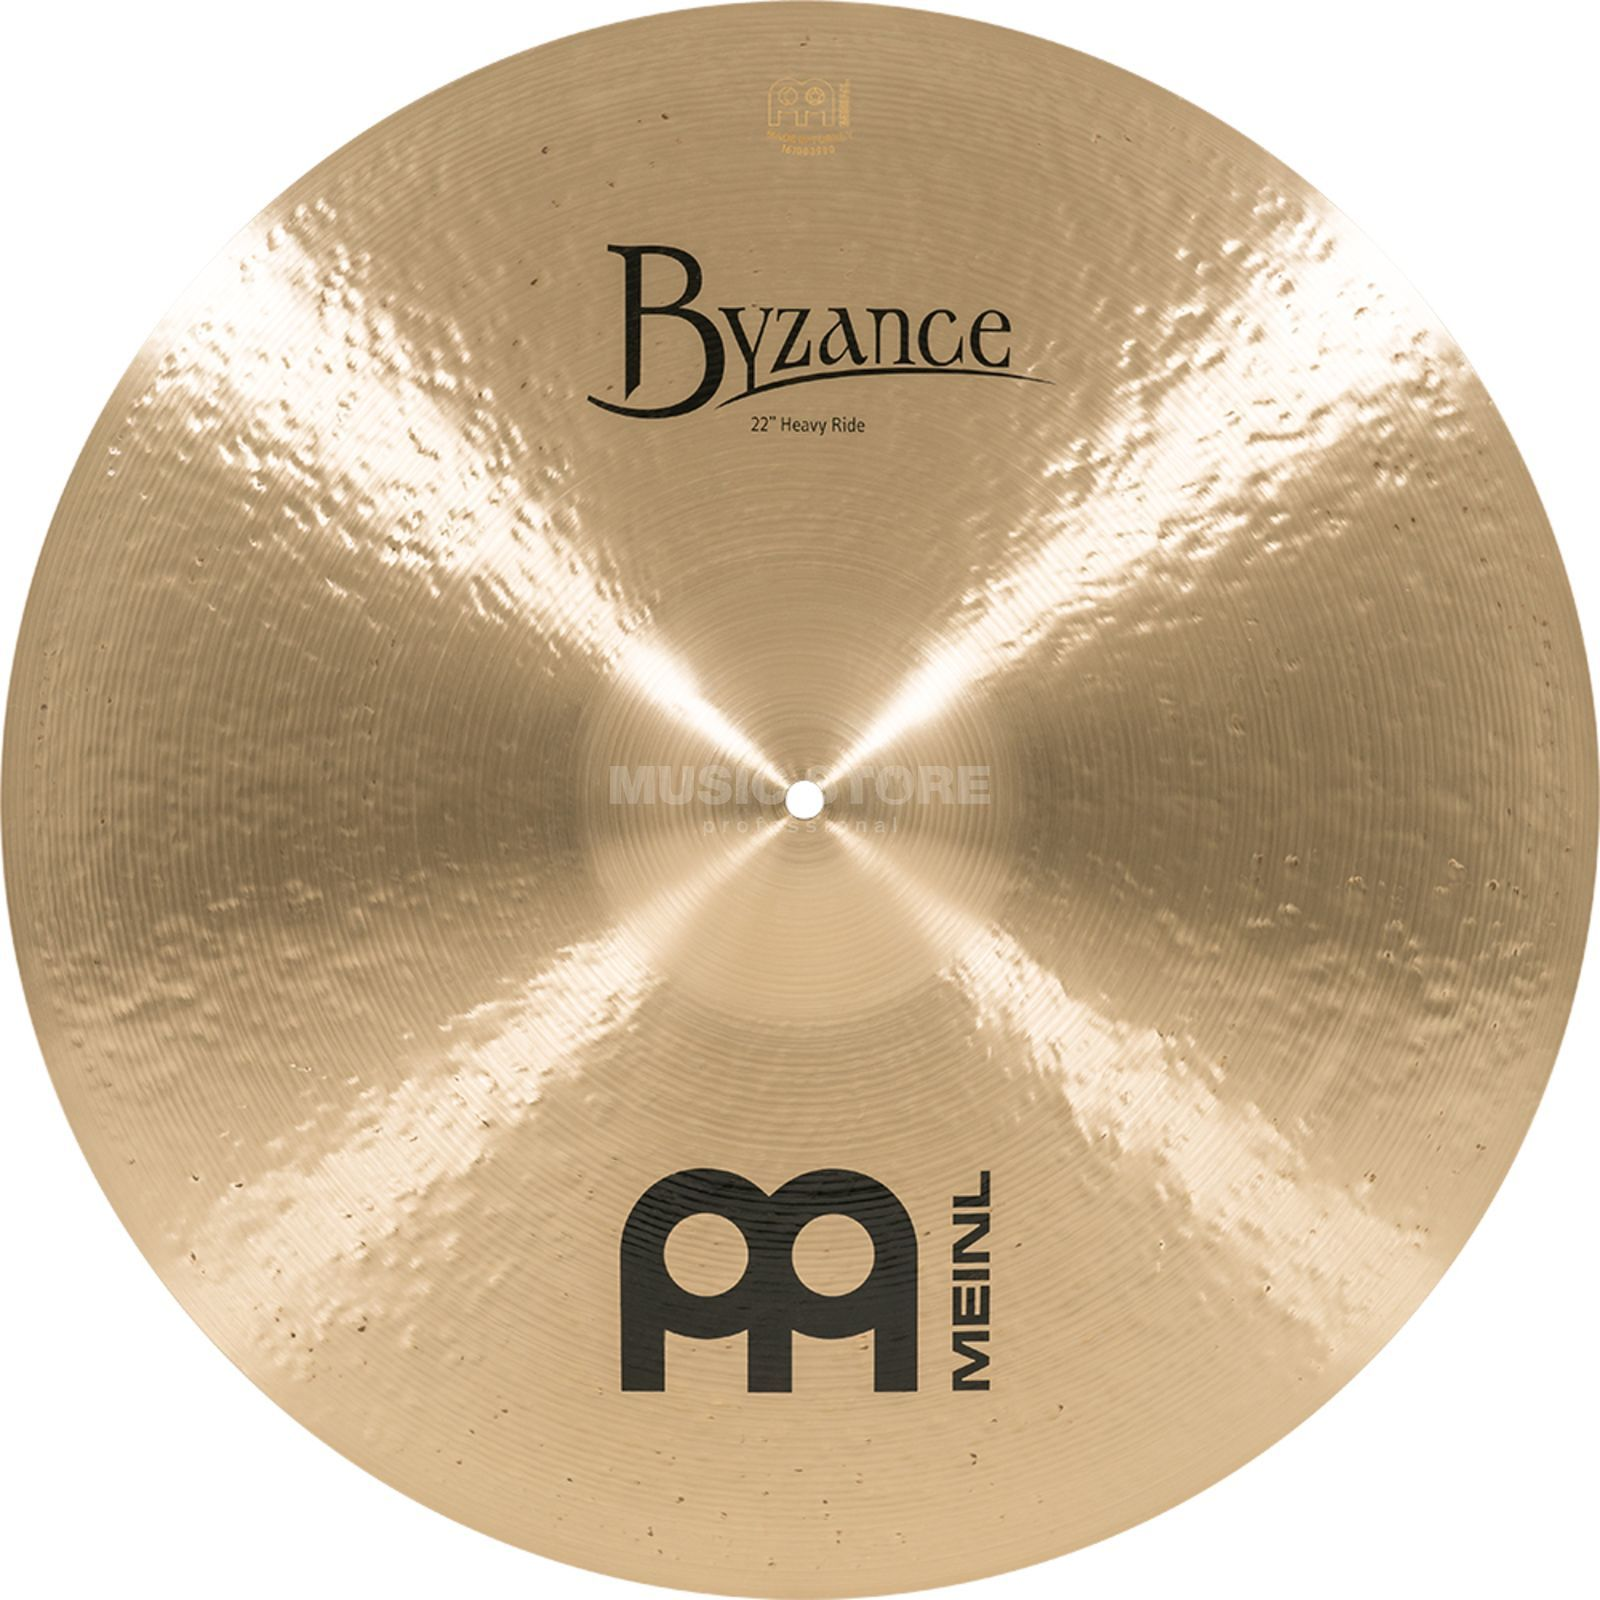 "Meinl Byzance Heavy Ride 22"", B22HR, Traditional Finish Produktbild"